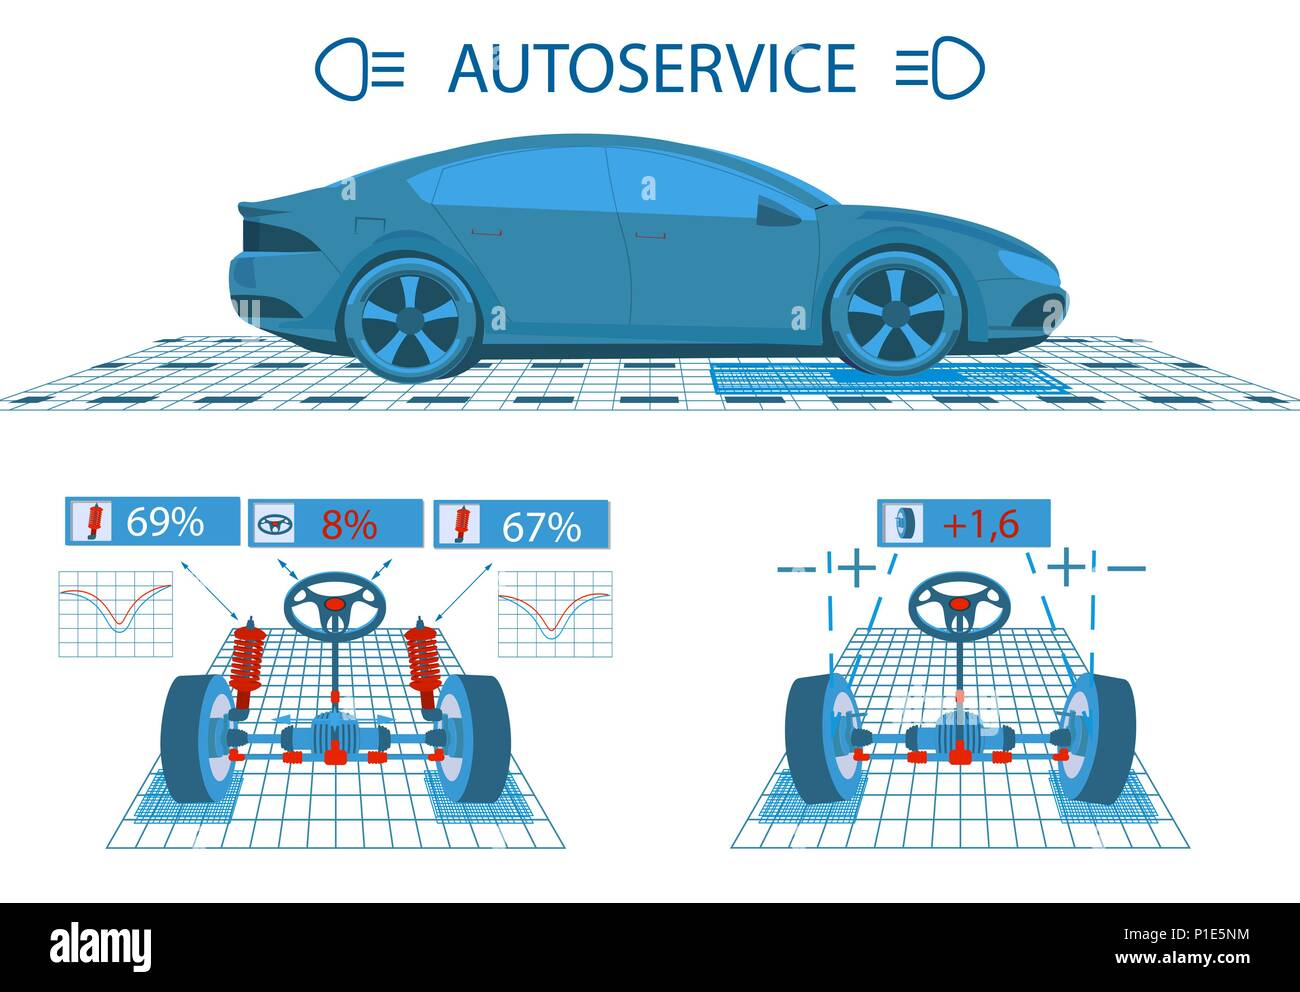 Car service. Scanning. Graphical interface. Diagnostic alignment of the wheels. Check of shock-absorbers, the steering mechanism. Side view and perspective. illustration - Stock Image